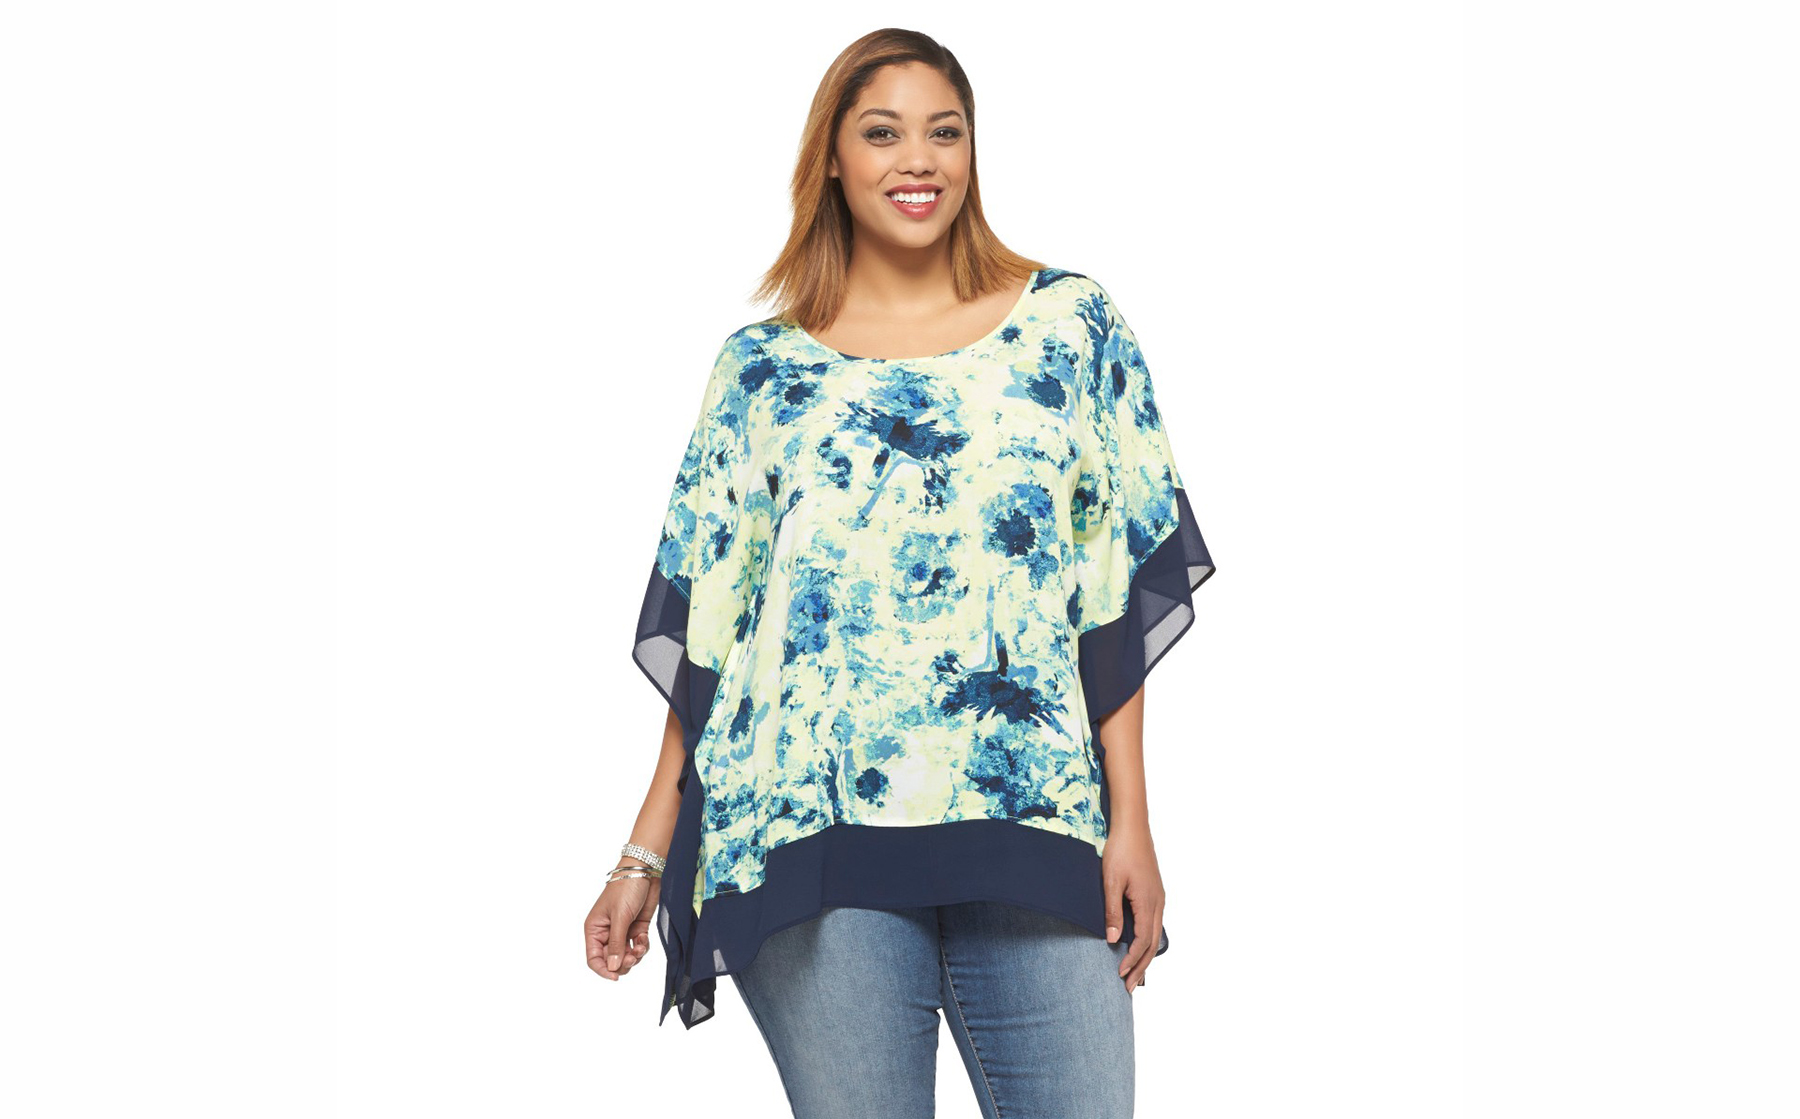 378cd2f1906 9 Clothing Brands That Are Revolutionizing the Plus-Size Market ...